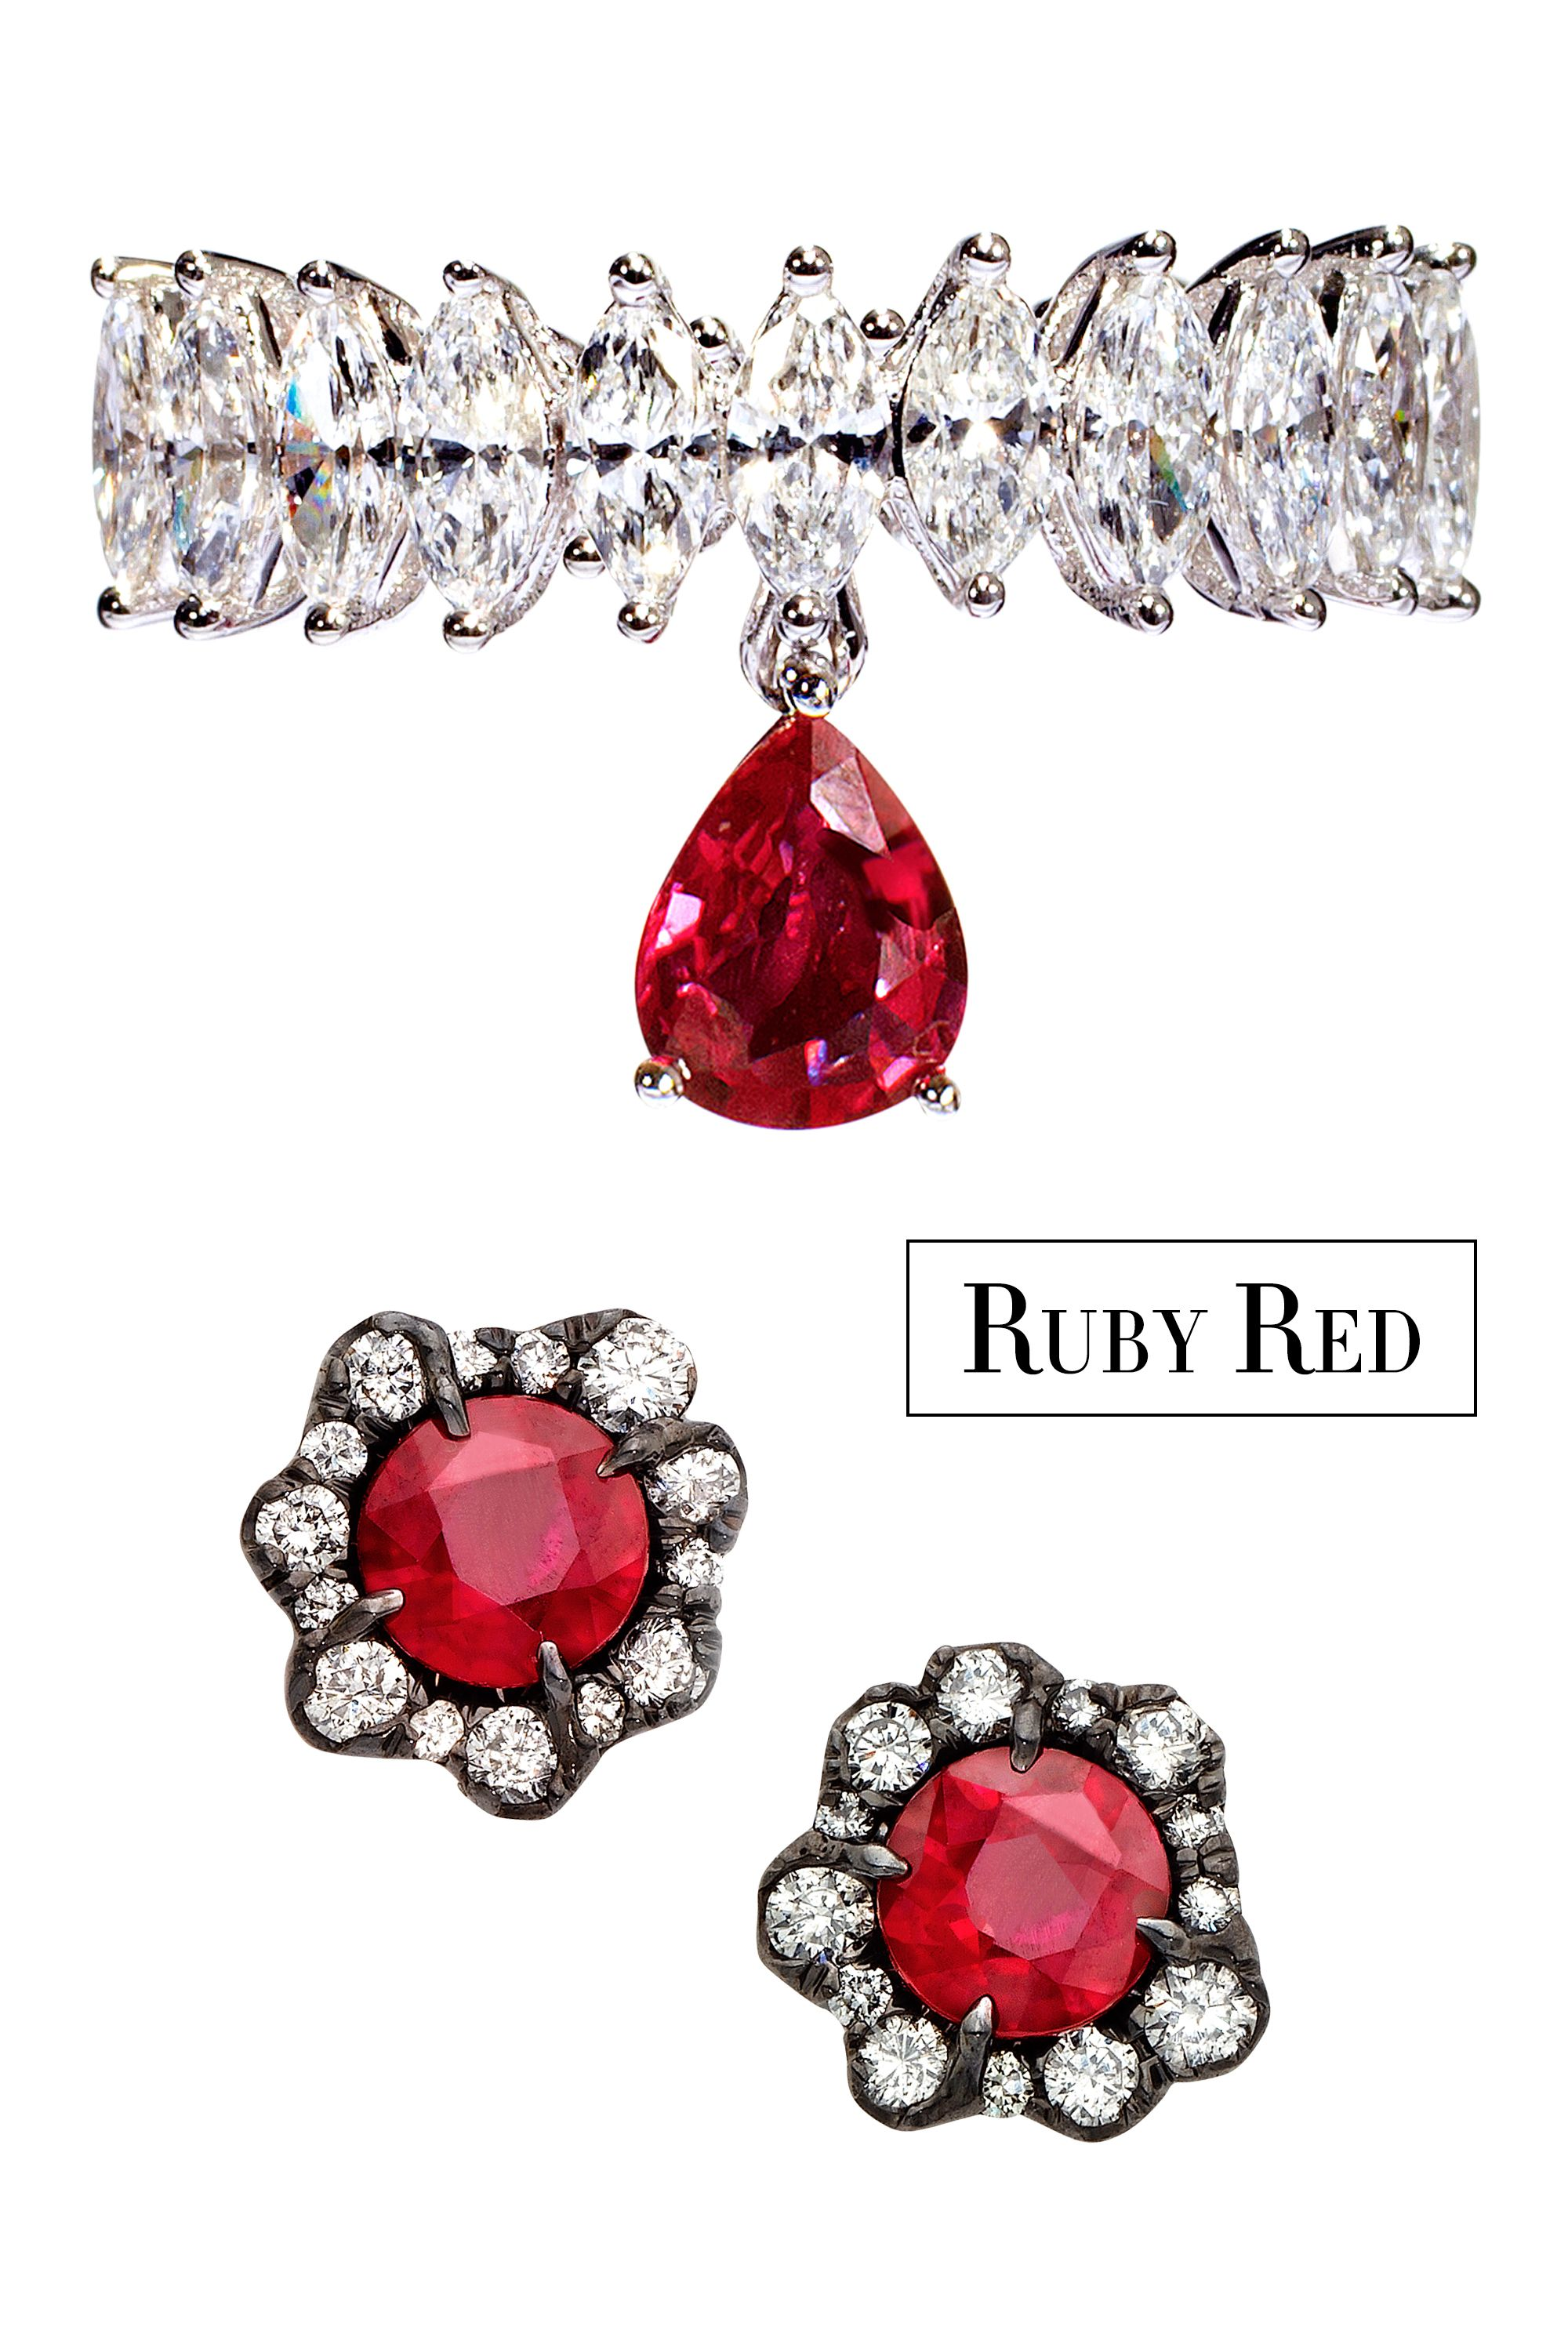 "<p>Update your jewelry collection with traditional blood-red rubies. A modern ring or a delicate pair of studs looks both fresh and glamorous. </p><p><strong>Simon G. Jewelry </strong>ring, $6,000, <a href=""https://www.simongjewelry.com/"" target=""_blank"">simongjewelry.com</a>; <strong>Kimberly McDonald x Gemfields</strong><span class=""redactor-invisible-space""> earrings, $33,400, Bergdorf Goodman, 212-872-2578.</span></p>"